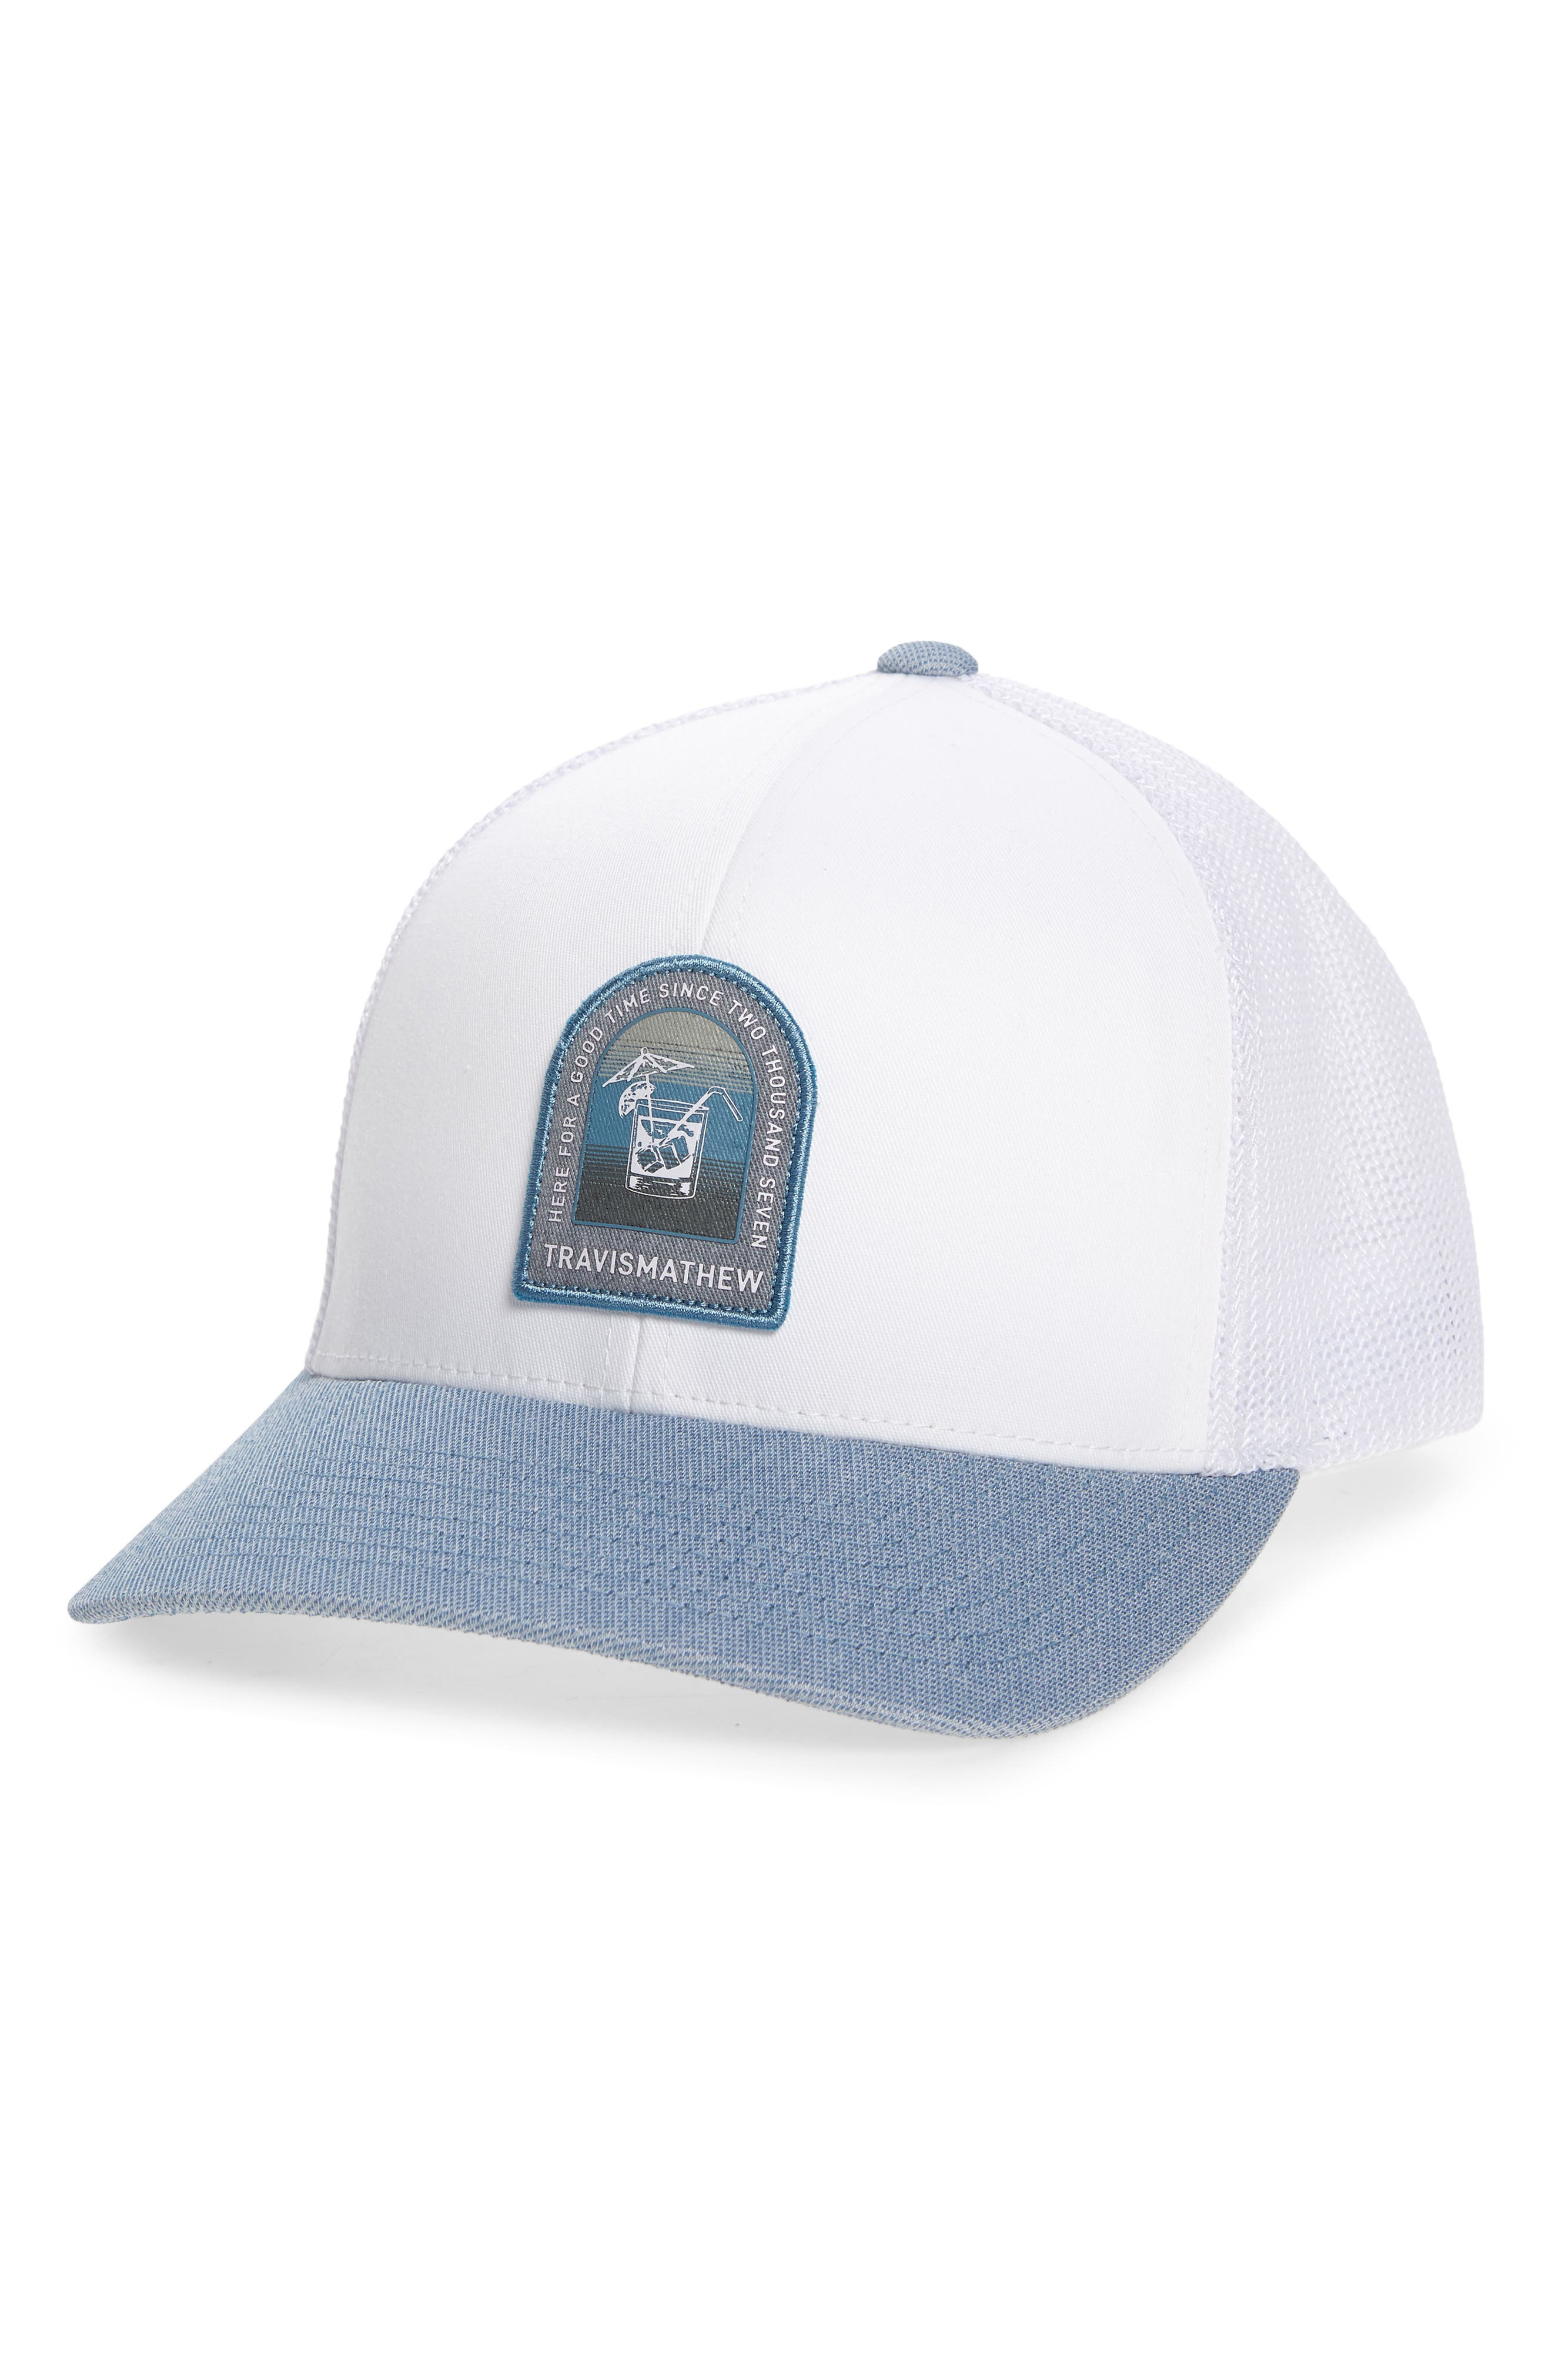 A stylized vintage-look patch keeps you looking ahead to the 19th hole in this cool mesh trucker hat. Style Name: Travismathew Golden Snapper Trucker Hat. Style Number: 6121077. Available in stores.